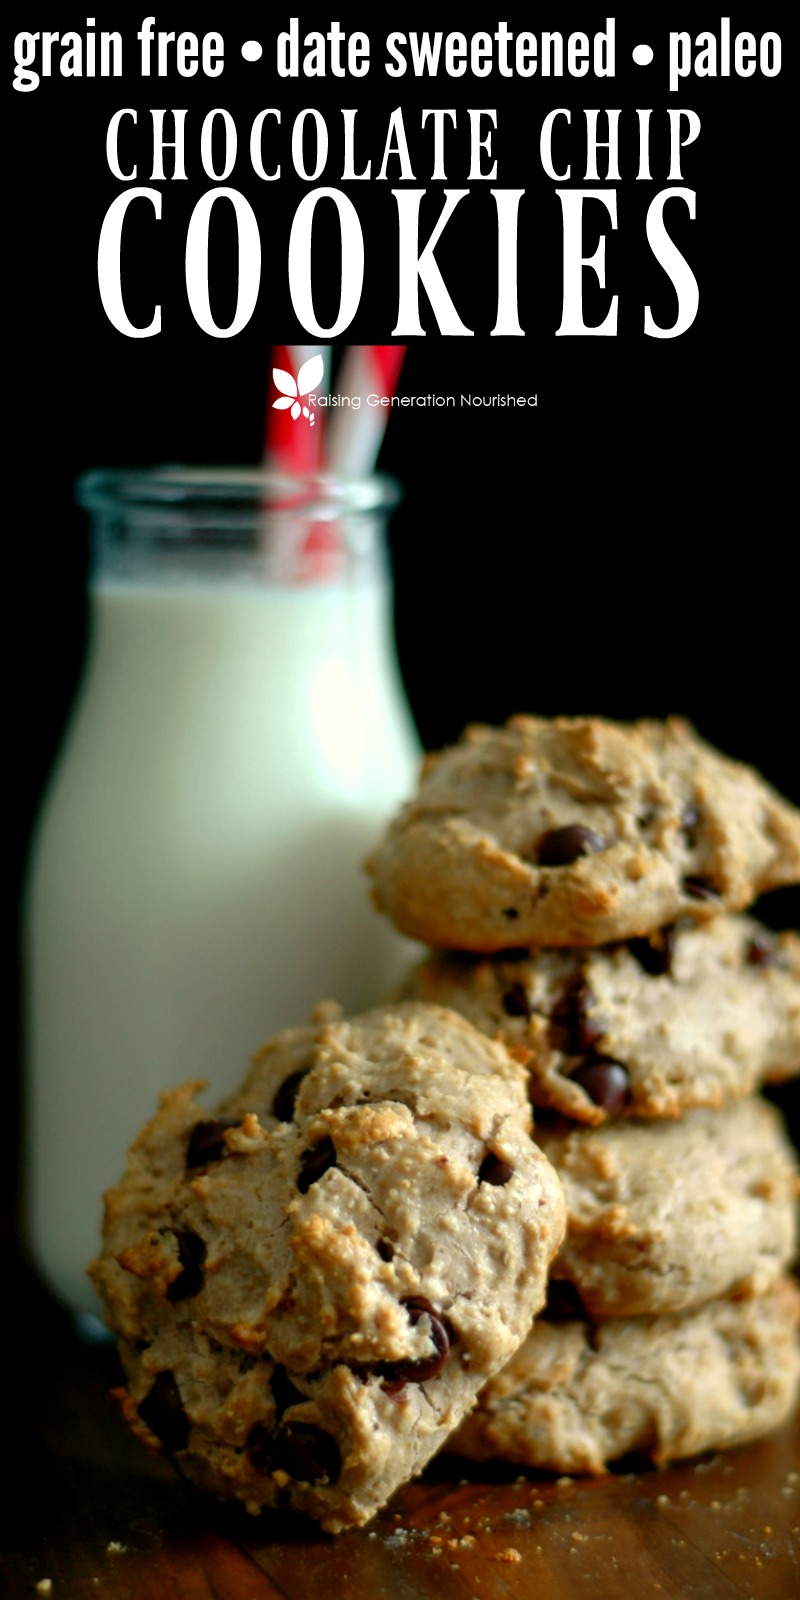 Grain Free Chocolate Chip Cookies :: Date Sweetened & Paleo Friendly!